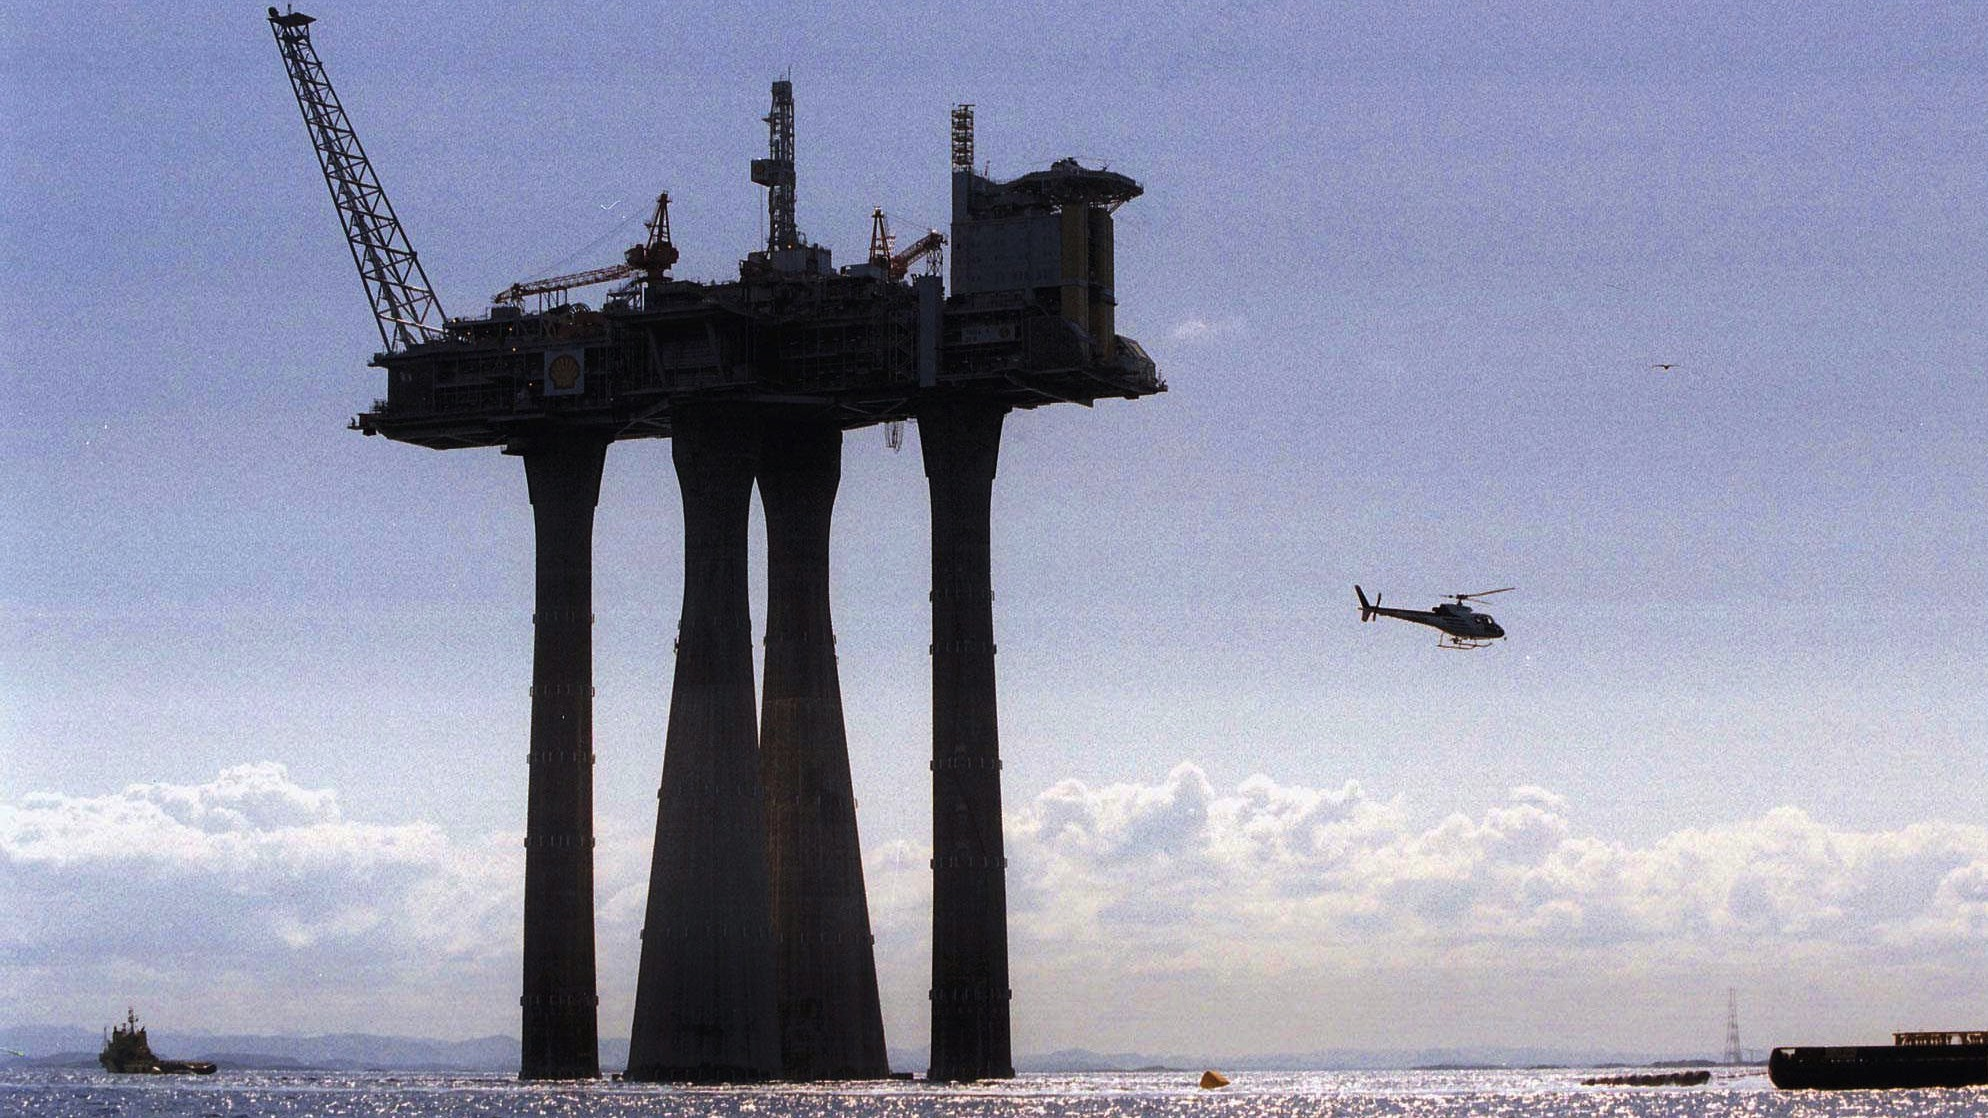 """The world's largest concrete construction, the gas platform """"Troll"""", dwarfs everything around when being towed out into the North Sea from Stavanger Thursday May 11, 1995. (AP Photo/ Morten Hval)"""